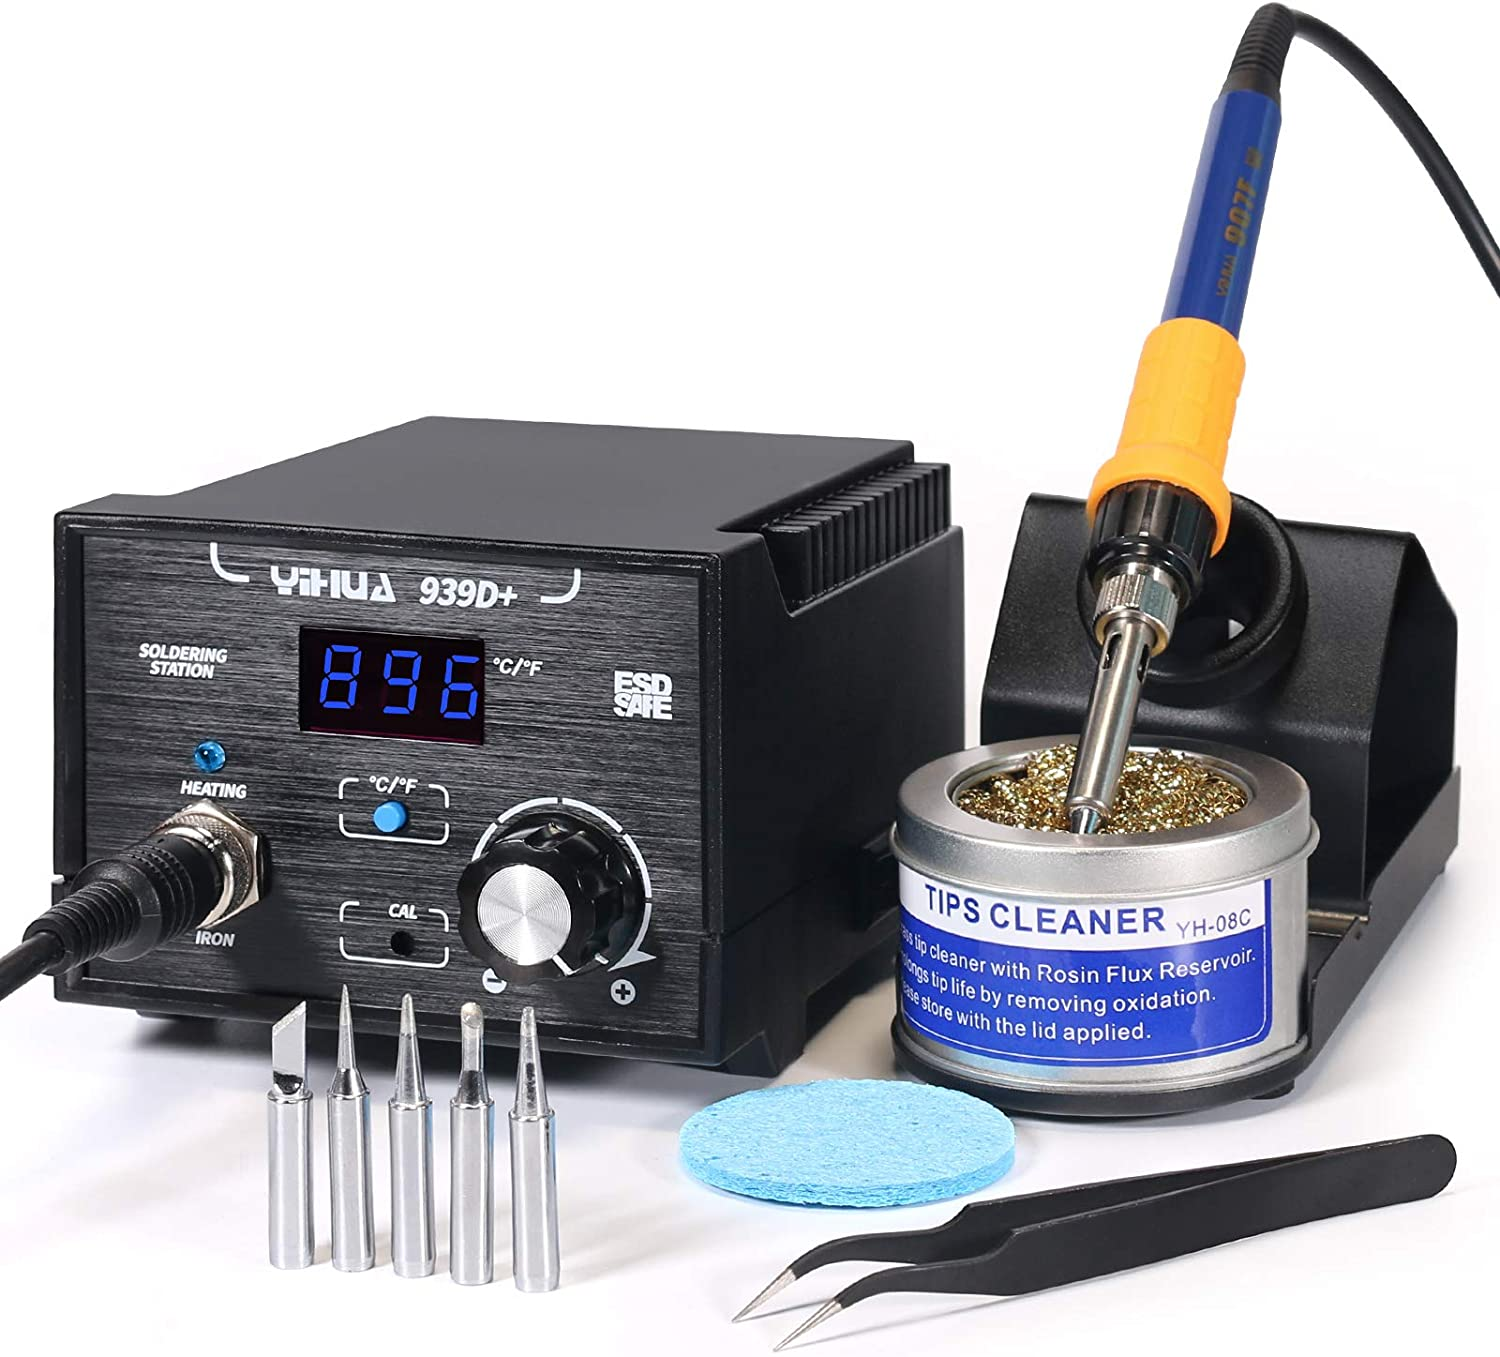 Yihua 939D+ Digital Soldering Station, 75W Equivalent with Precision Temp Control ( 392°F to 896°F) and Built-in Transformer.ESD Safe, Lead Free with °F /°C display. Includes 5 Solder Tips& 3+ Extras